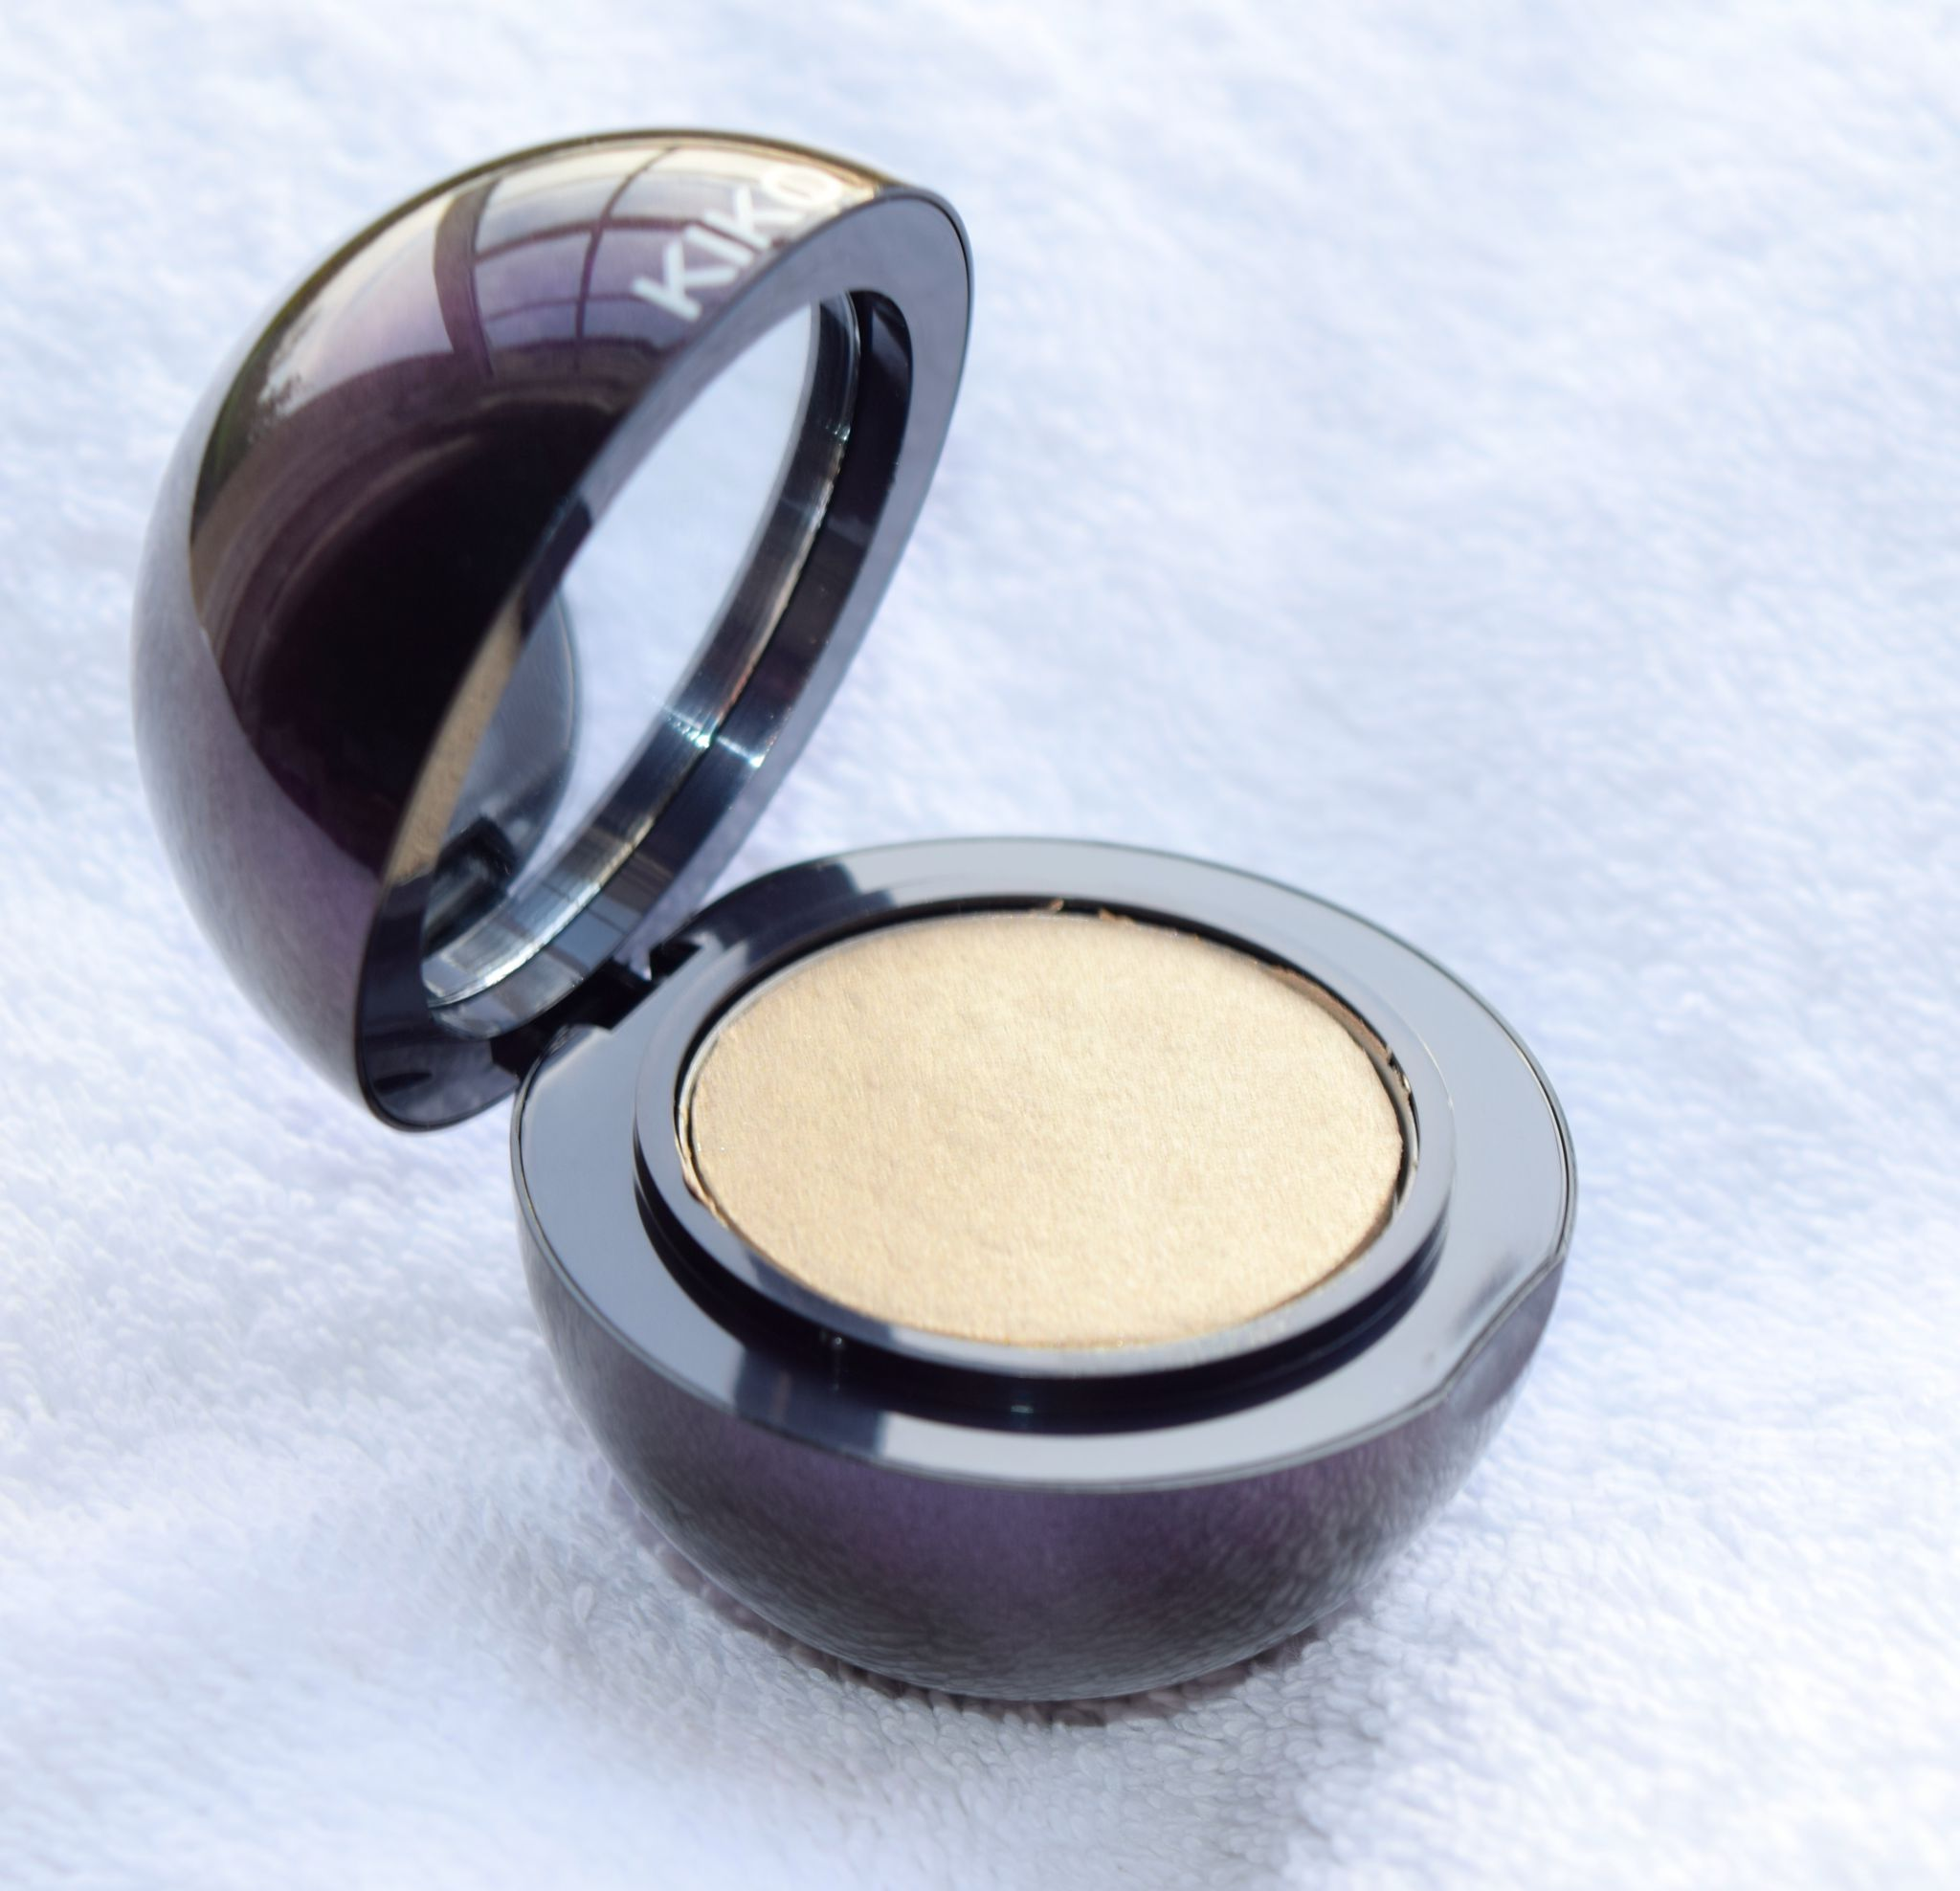 Kiko Cosmetics Midnight Siren Cream Highlighter